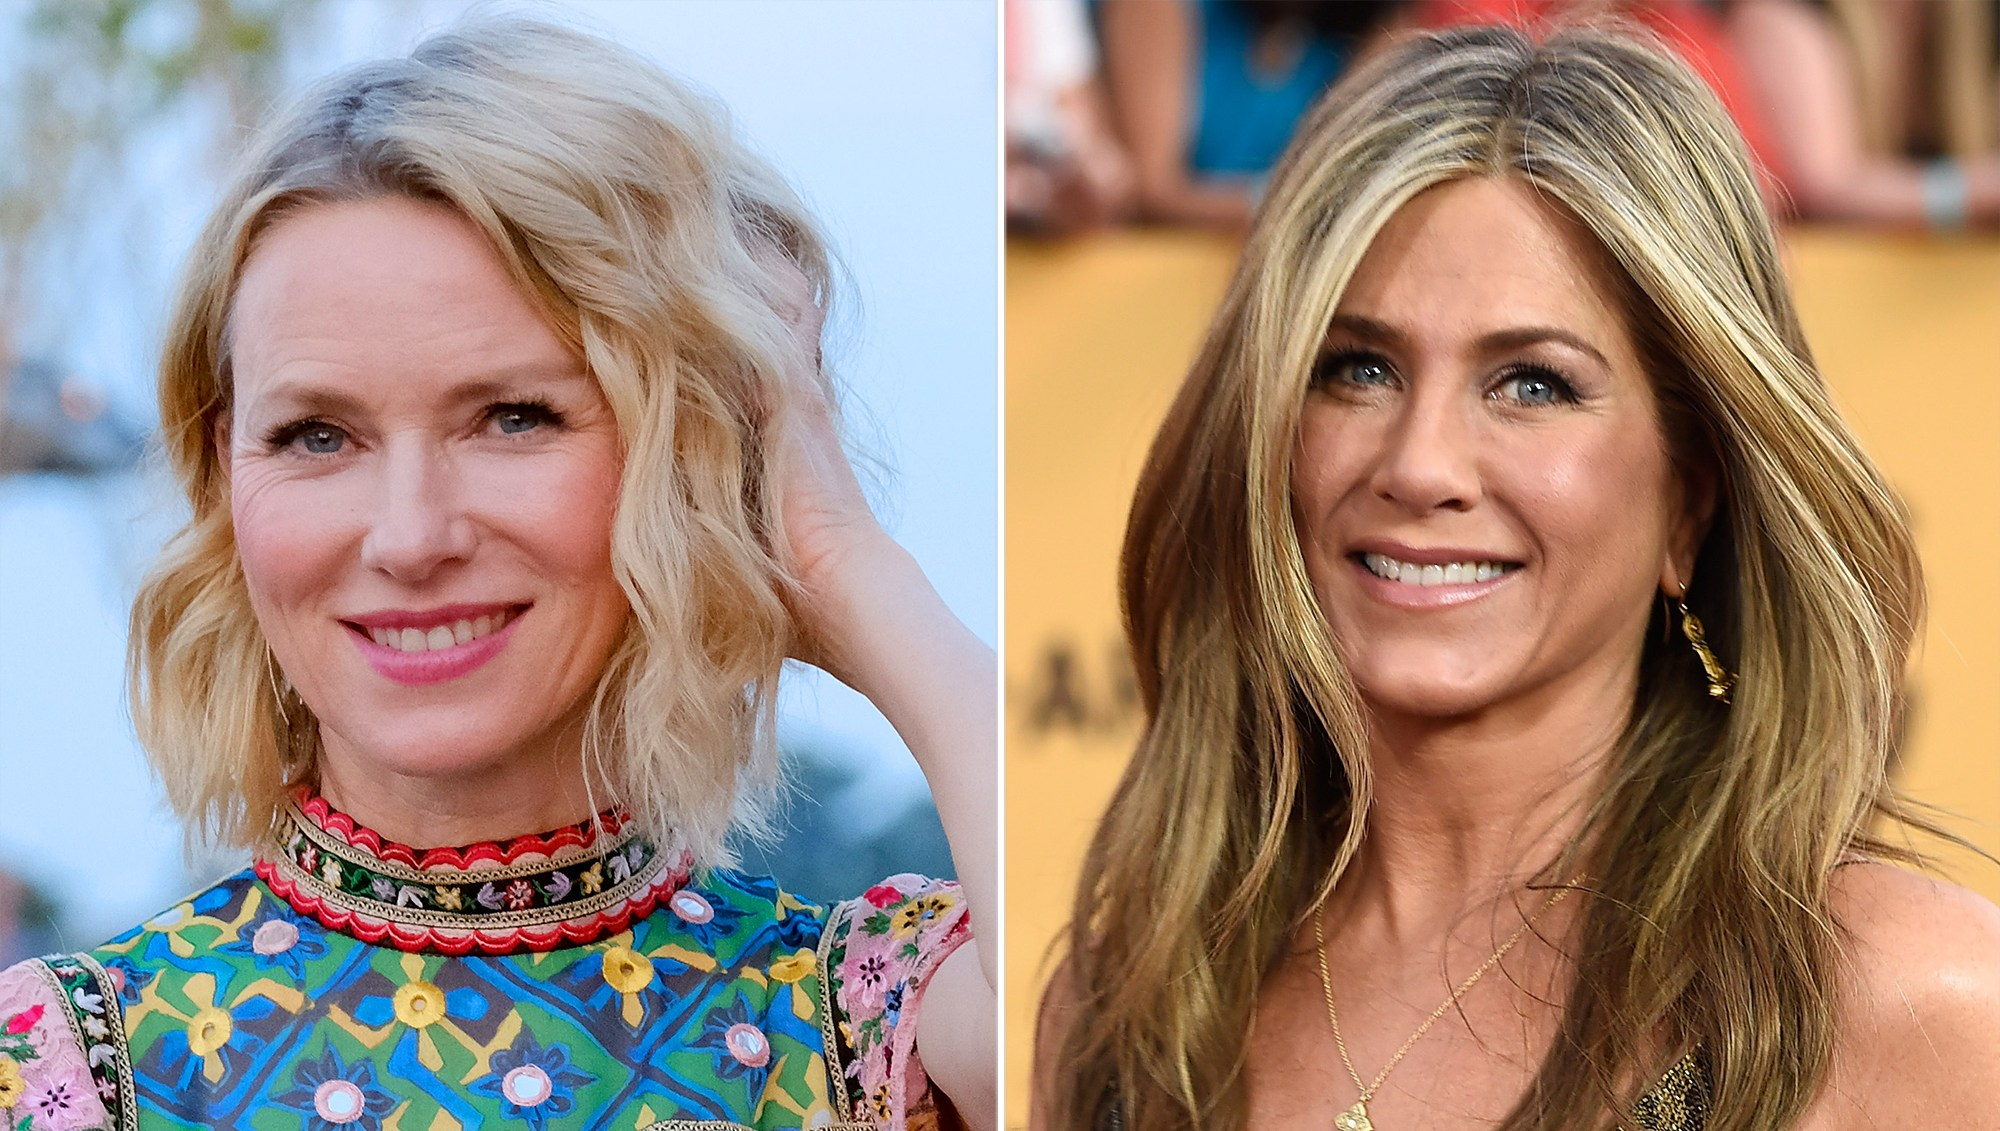 Naomi Watts and Jennifer Aniston